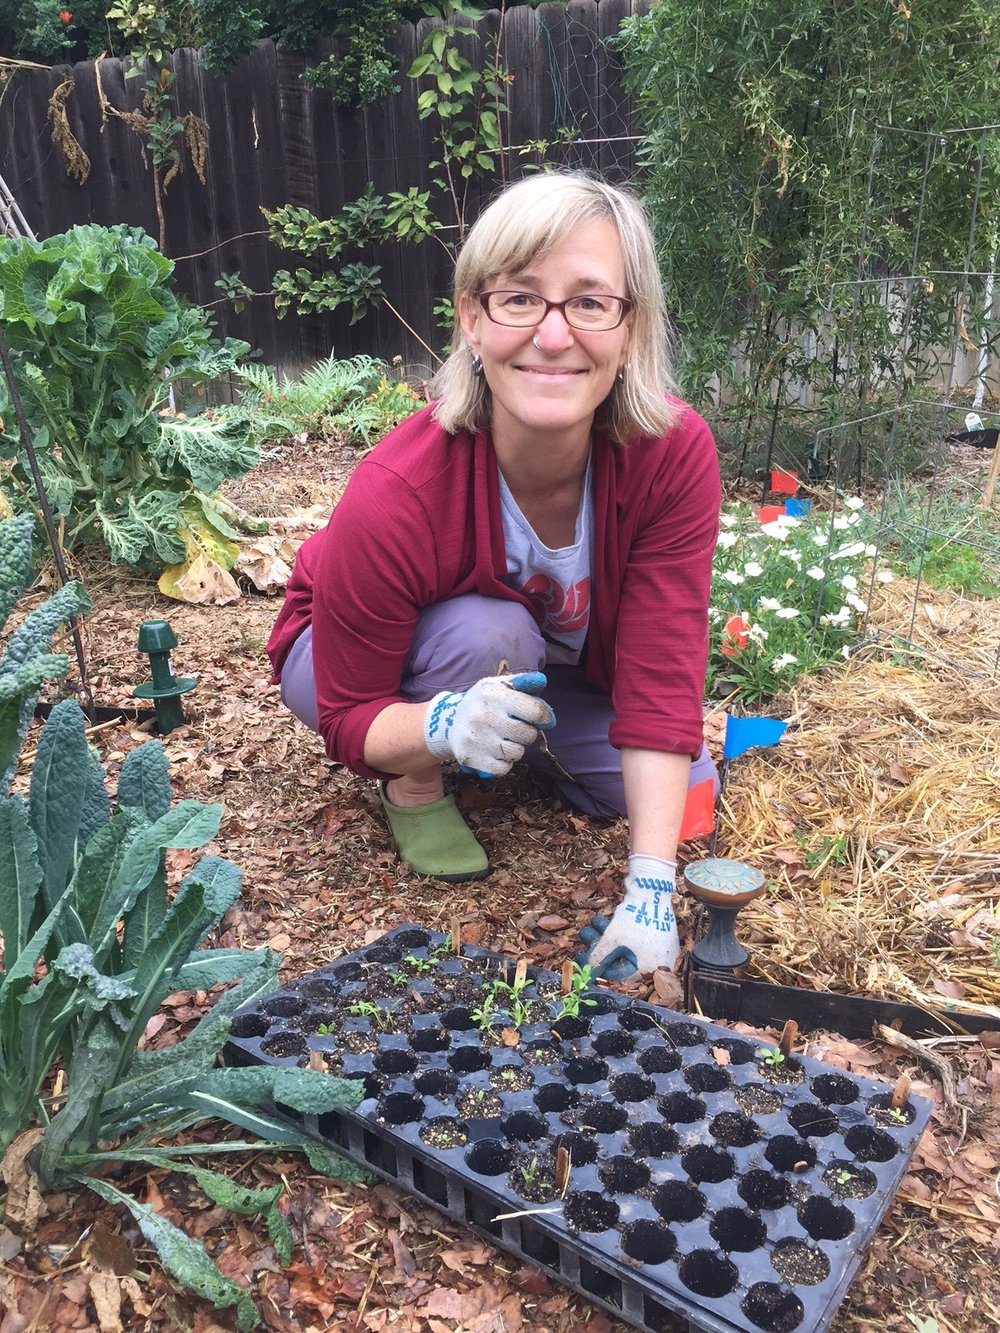 Joan Stevens loves plants - She is a botanist and ethnobotanist by training and a gardener by choice. She guerilla composts and works to improve the soil wherever she can. Joan teaches gardening, permaculture, and science classes in a variety of settings and is currently a biology instructor at Pasadena City College. She has two boys who are the inspiration for Two Suns Farm, an experimental micro-farm in Pasadena.  Her most recent passions are designing year-round cutting gardens and growing food in our challenging climate.